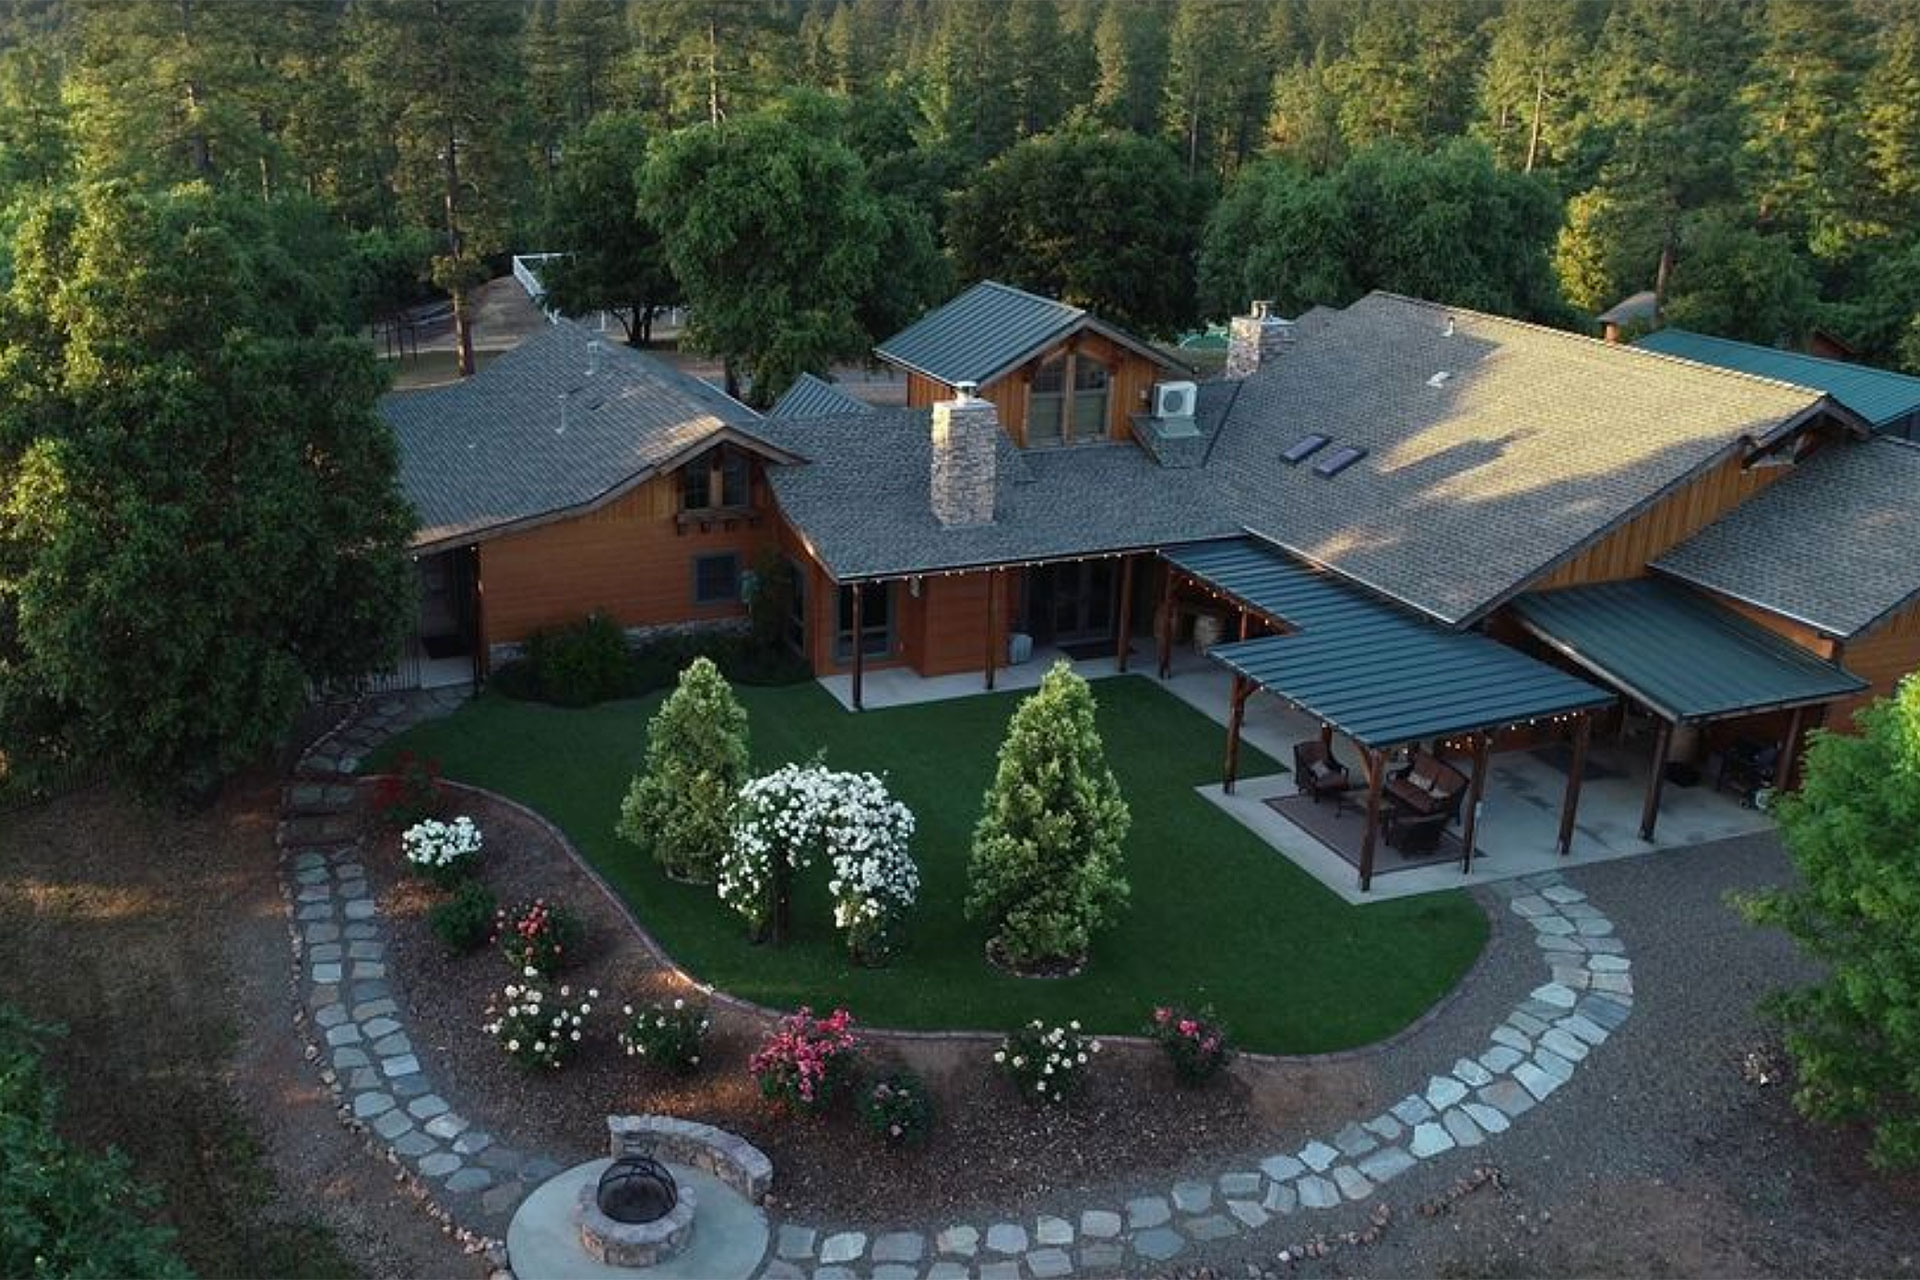 Dog & Pony Ranch Vacation Rental in Pine Grove, California; Courtesy of HomeAway